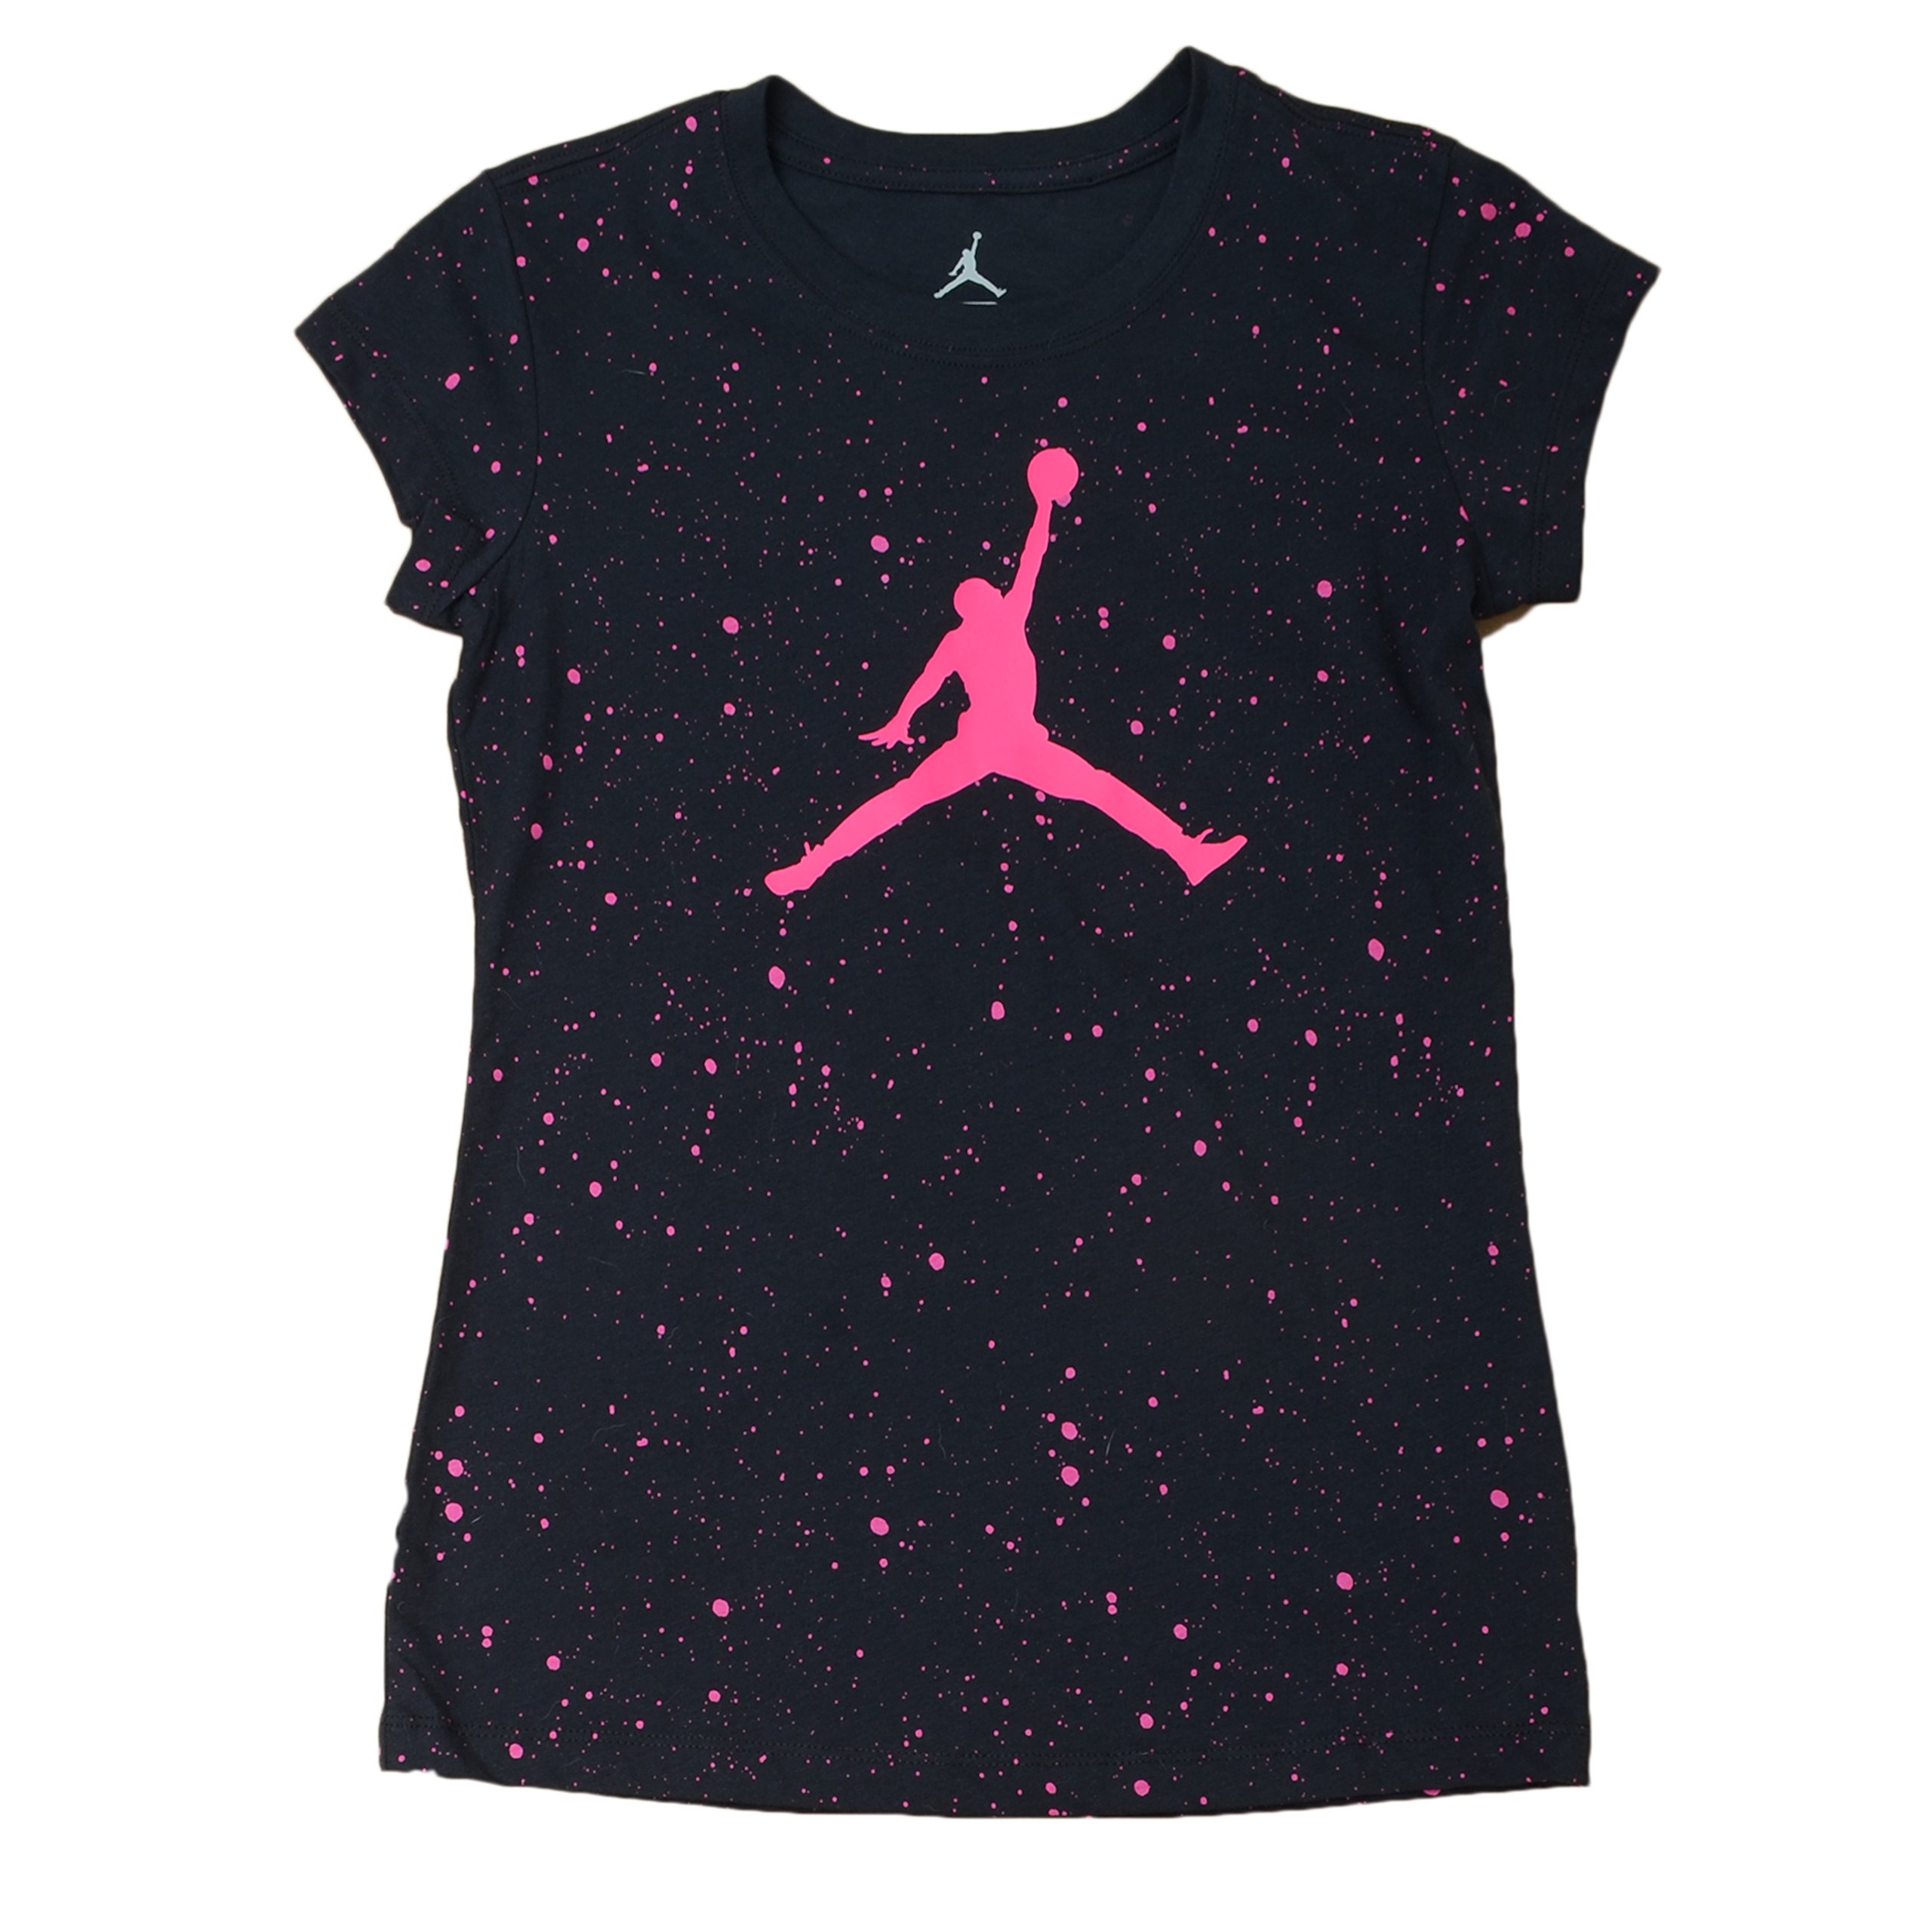 NIKE Jordan Big Girl's AOP Speckle Short-Sleeve Tee (L(12-13YRS), Black/Pink)